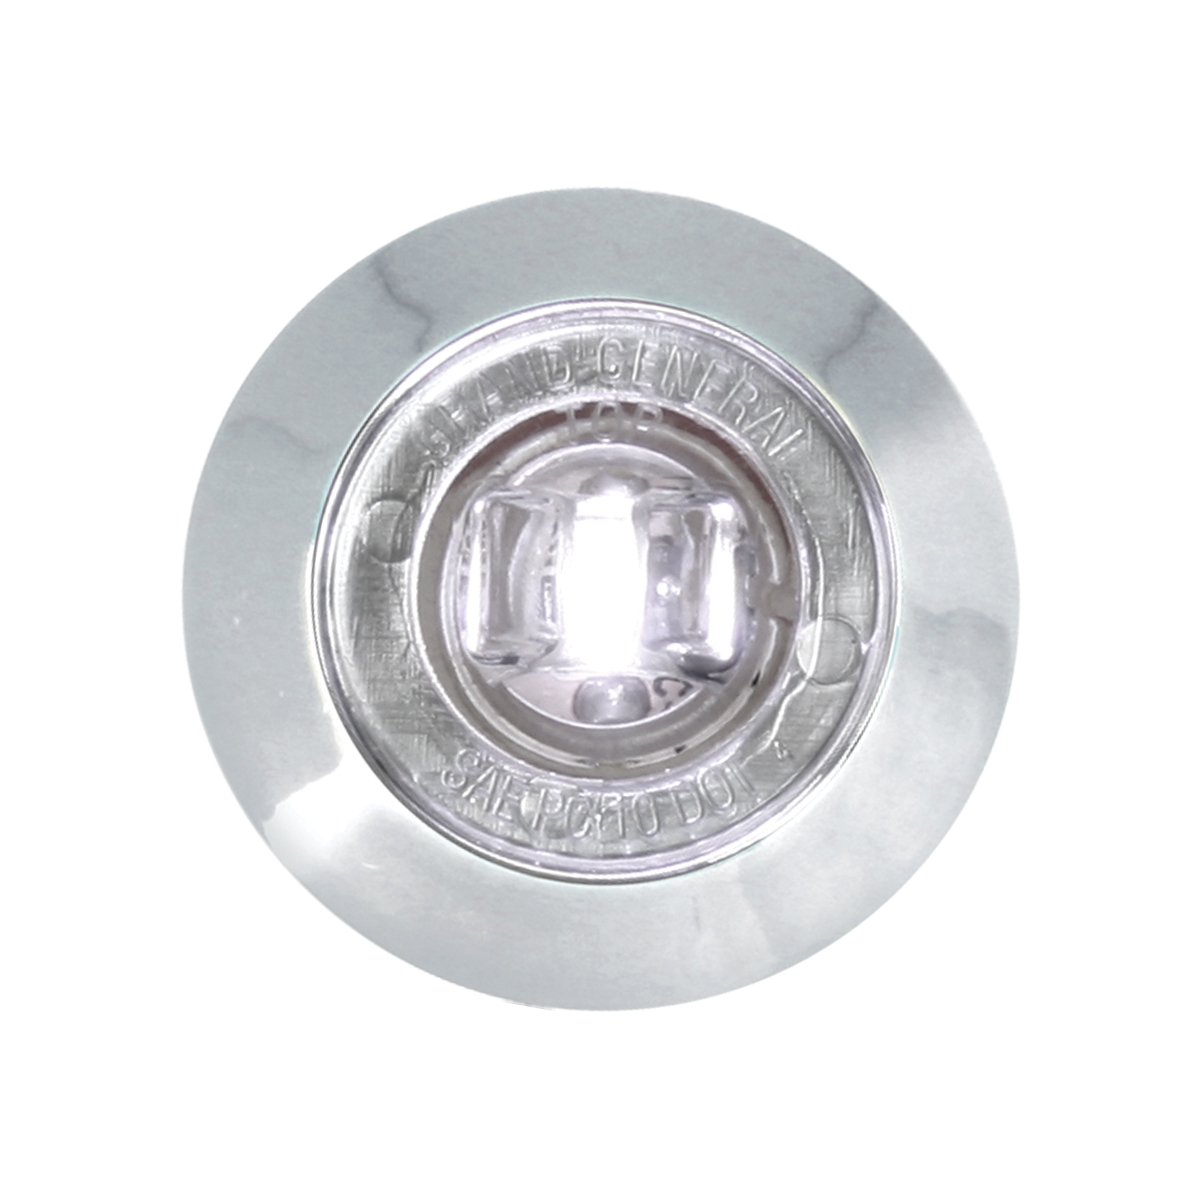 "75274 1"" Dual Function Mini Push/Screw-in Wide Angle LED Light w/ Chrome Bezel"